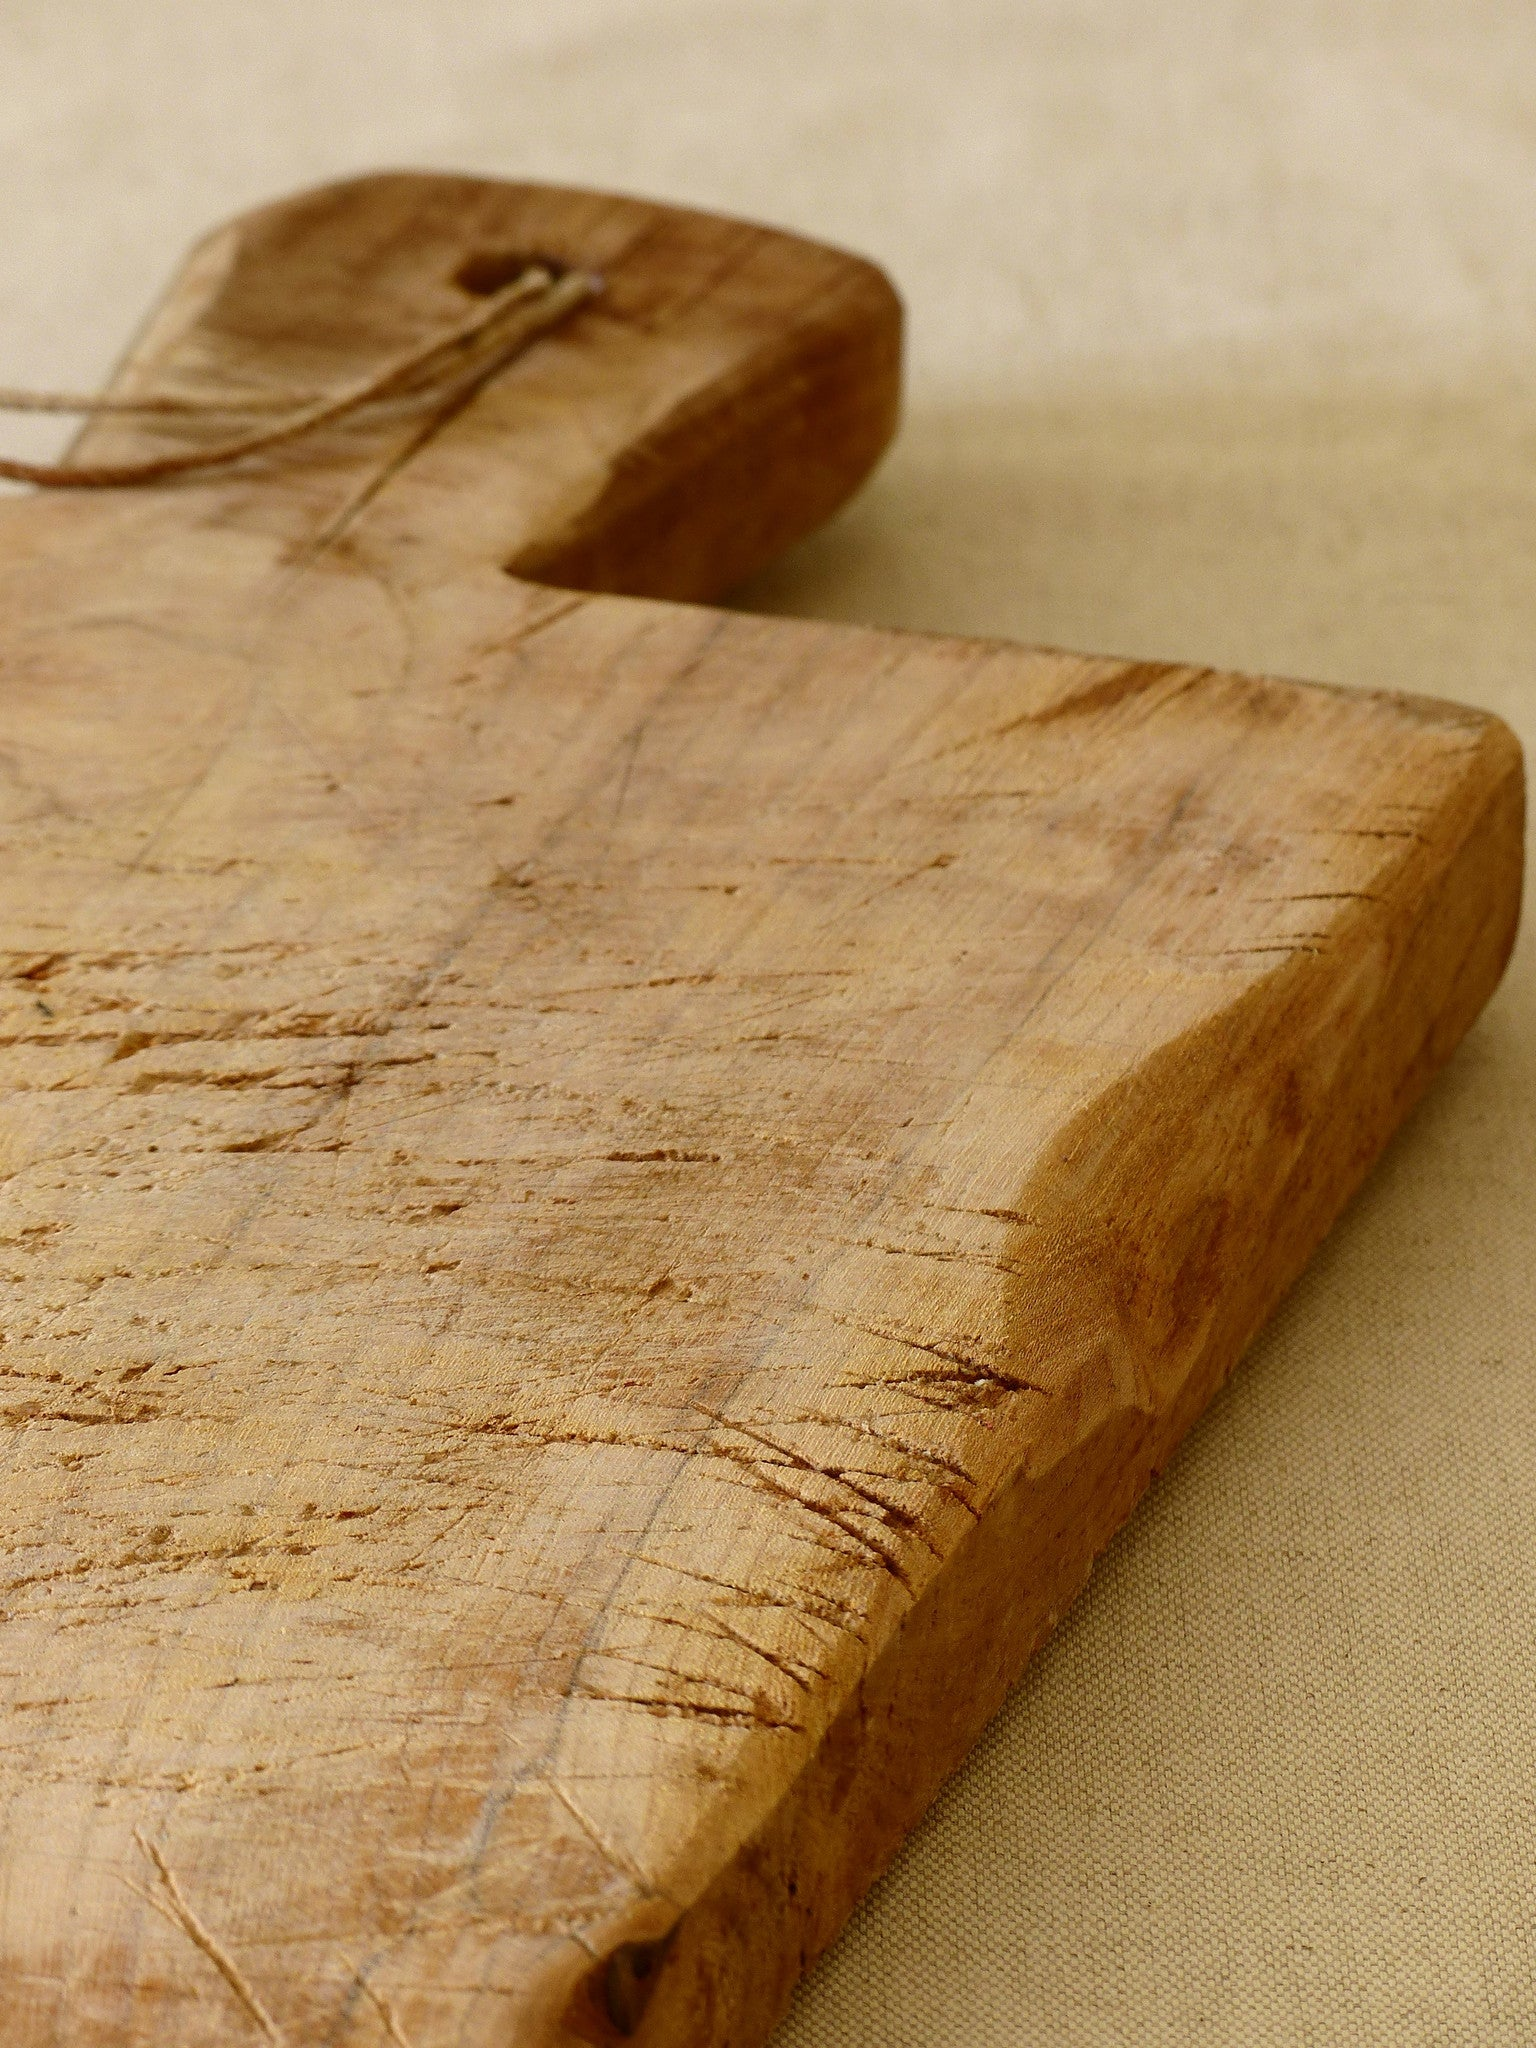 Rustic French cutting board with string